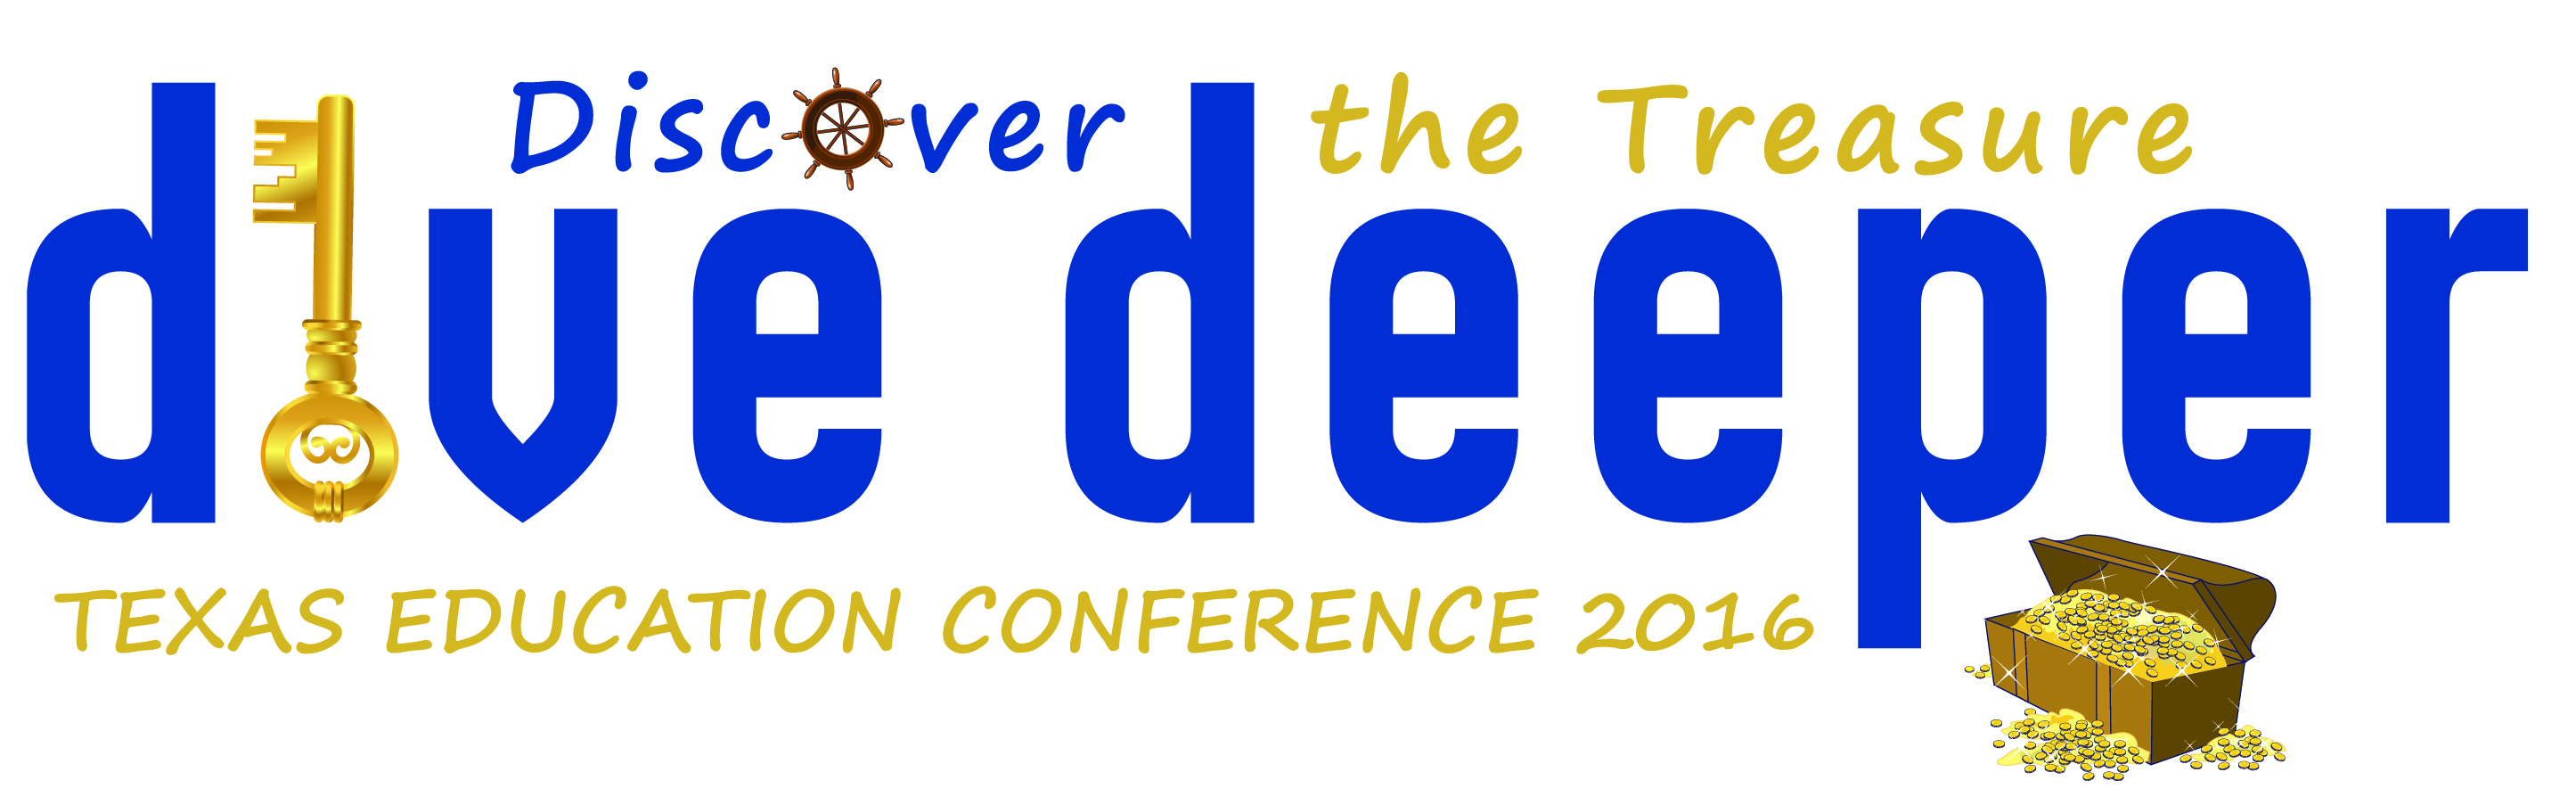 2016 Texas Education Conference